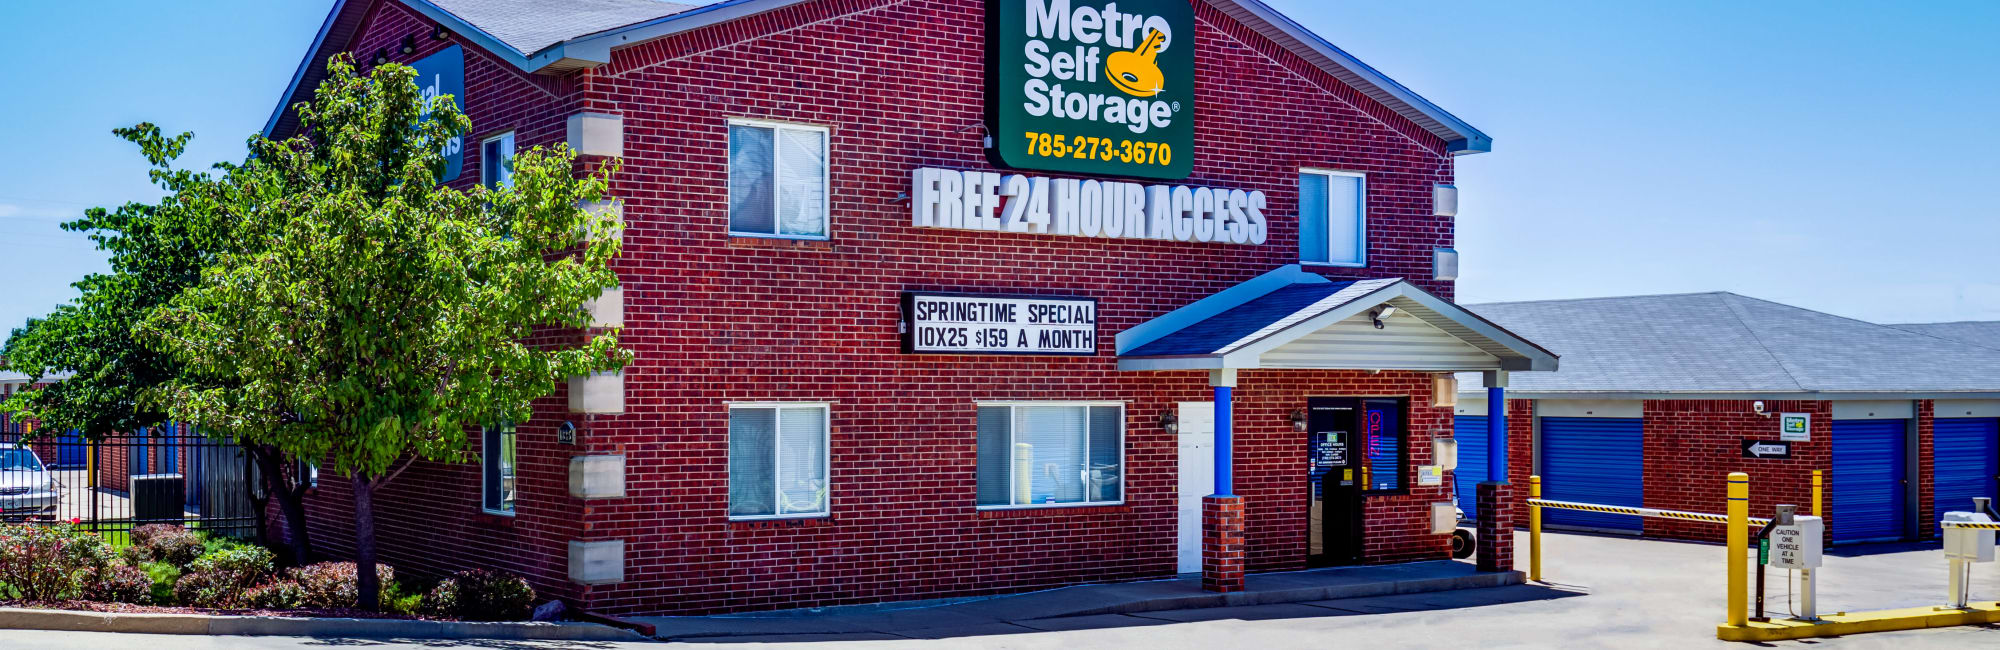 Metro Self Storage in Topeka, KS